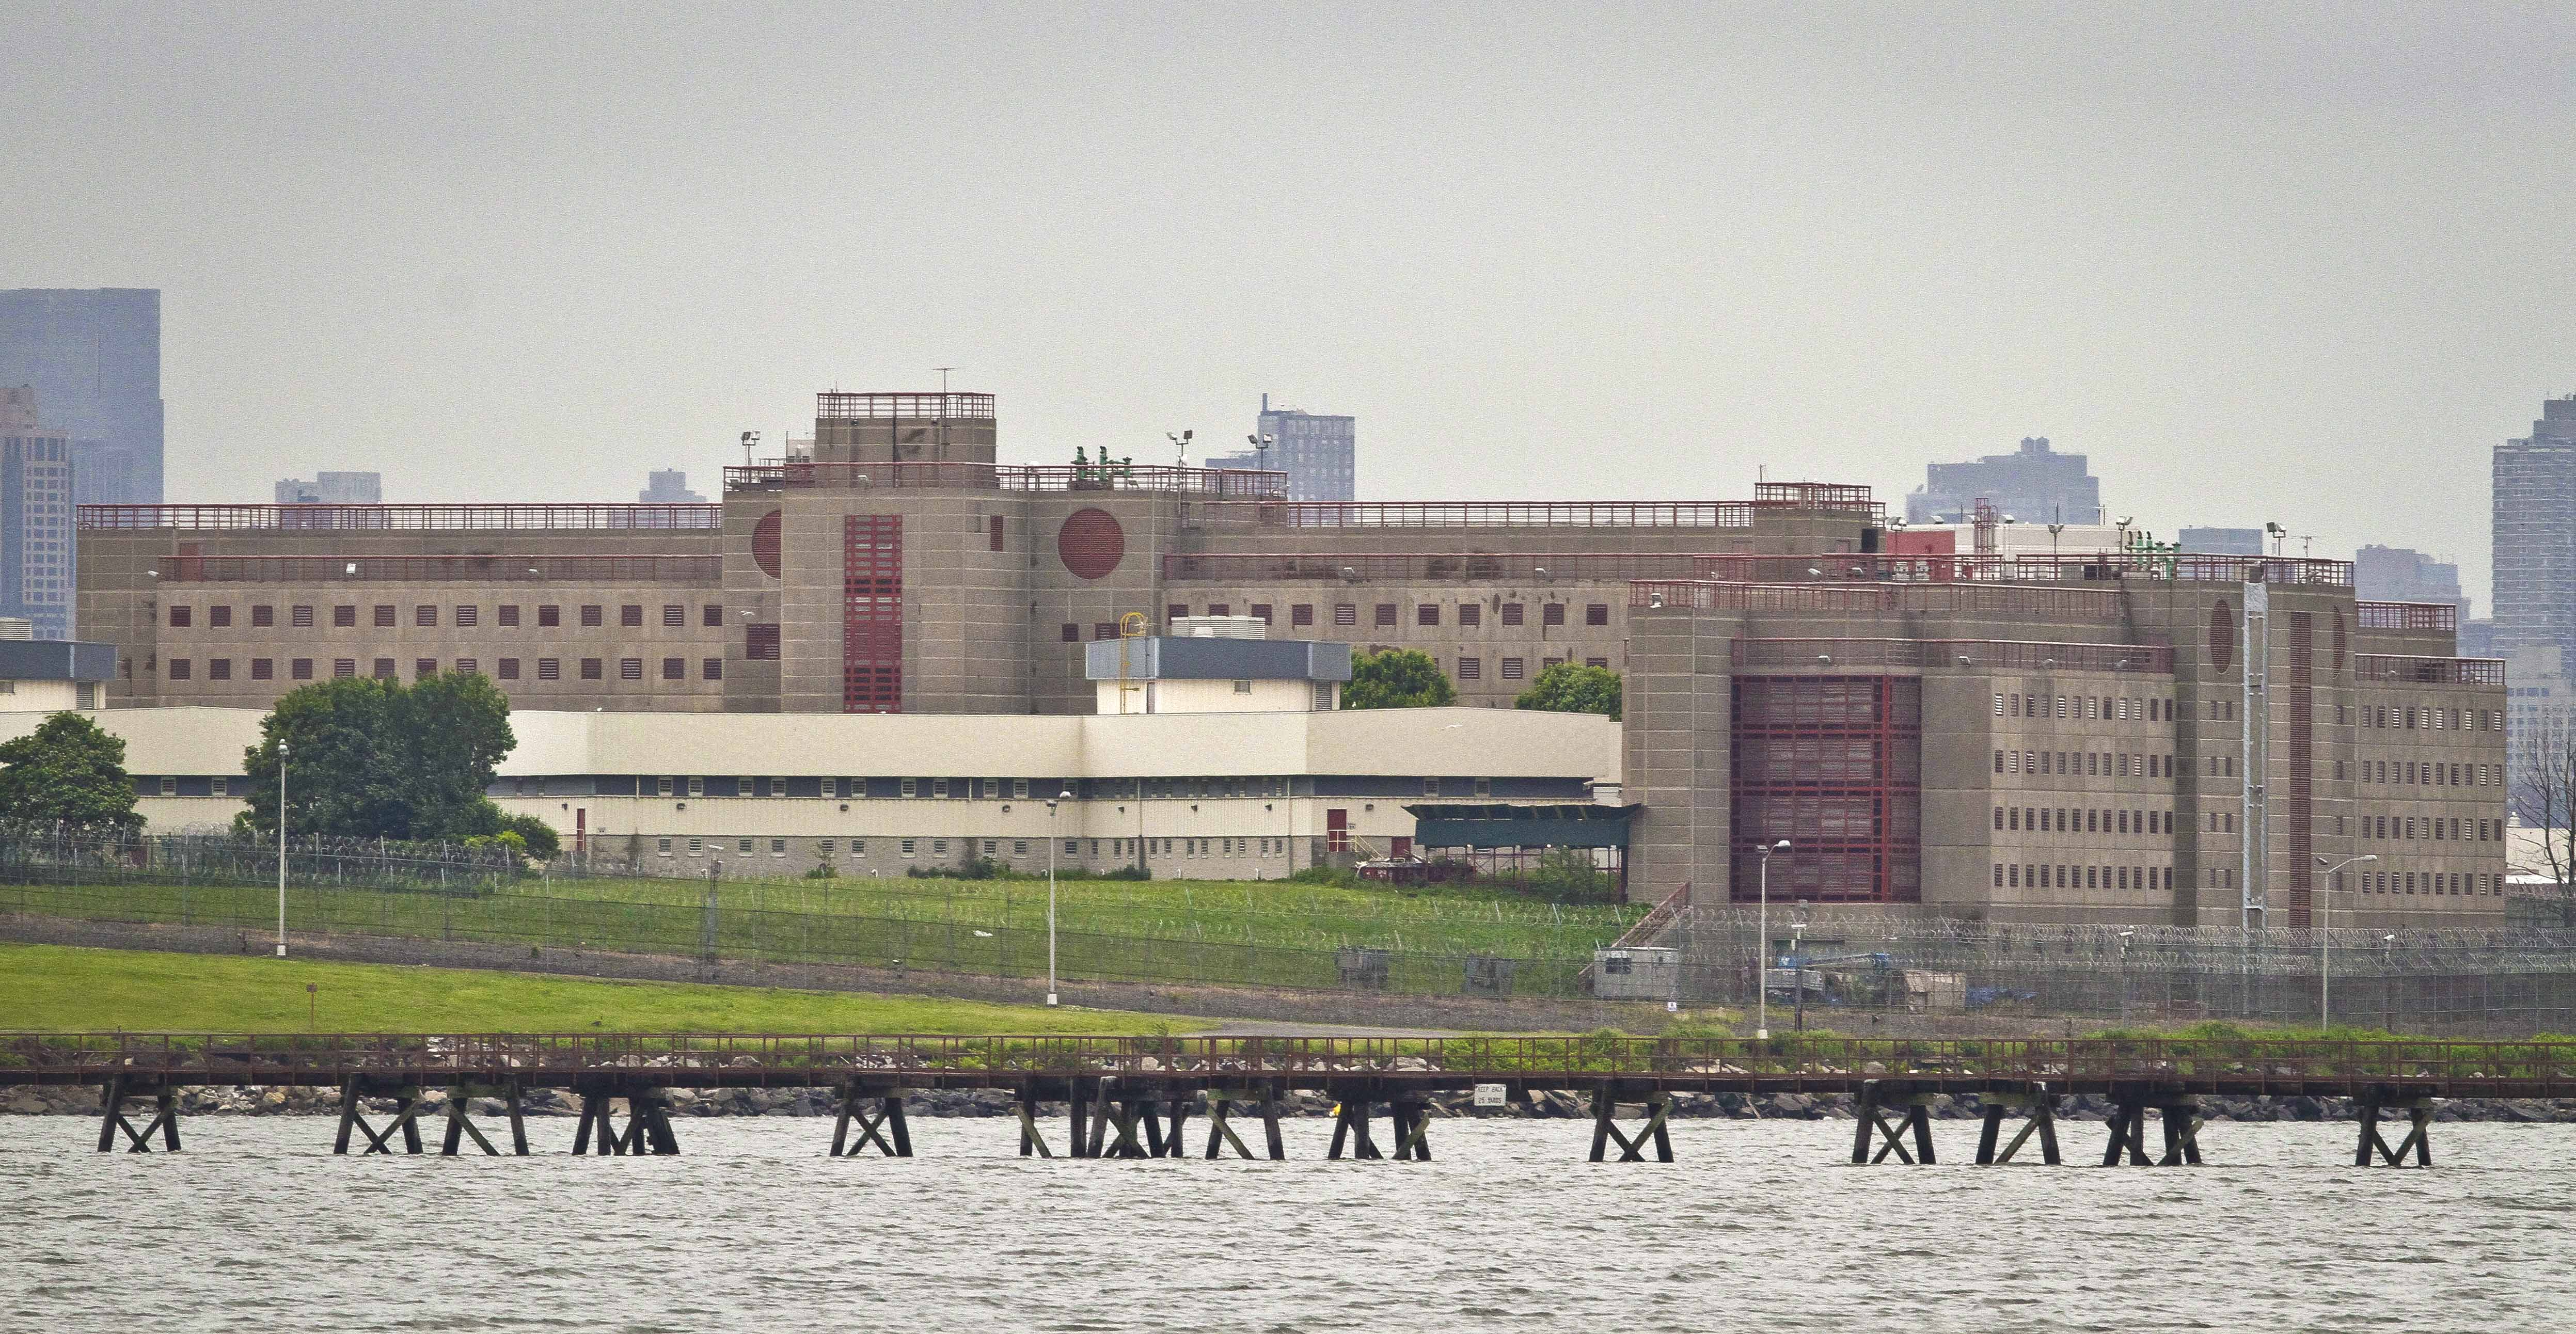 This June 11, 2014 file photo shows the eastern section of the Rikers Island jail complex in New York.